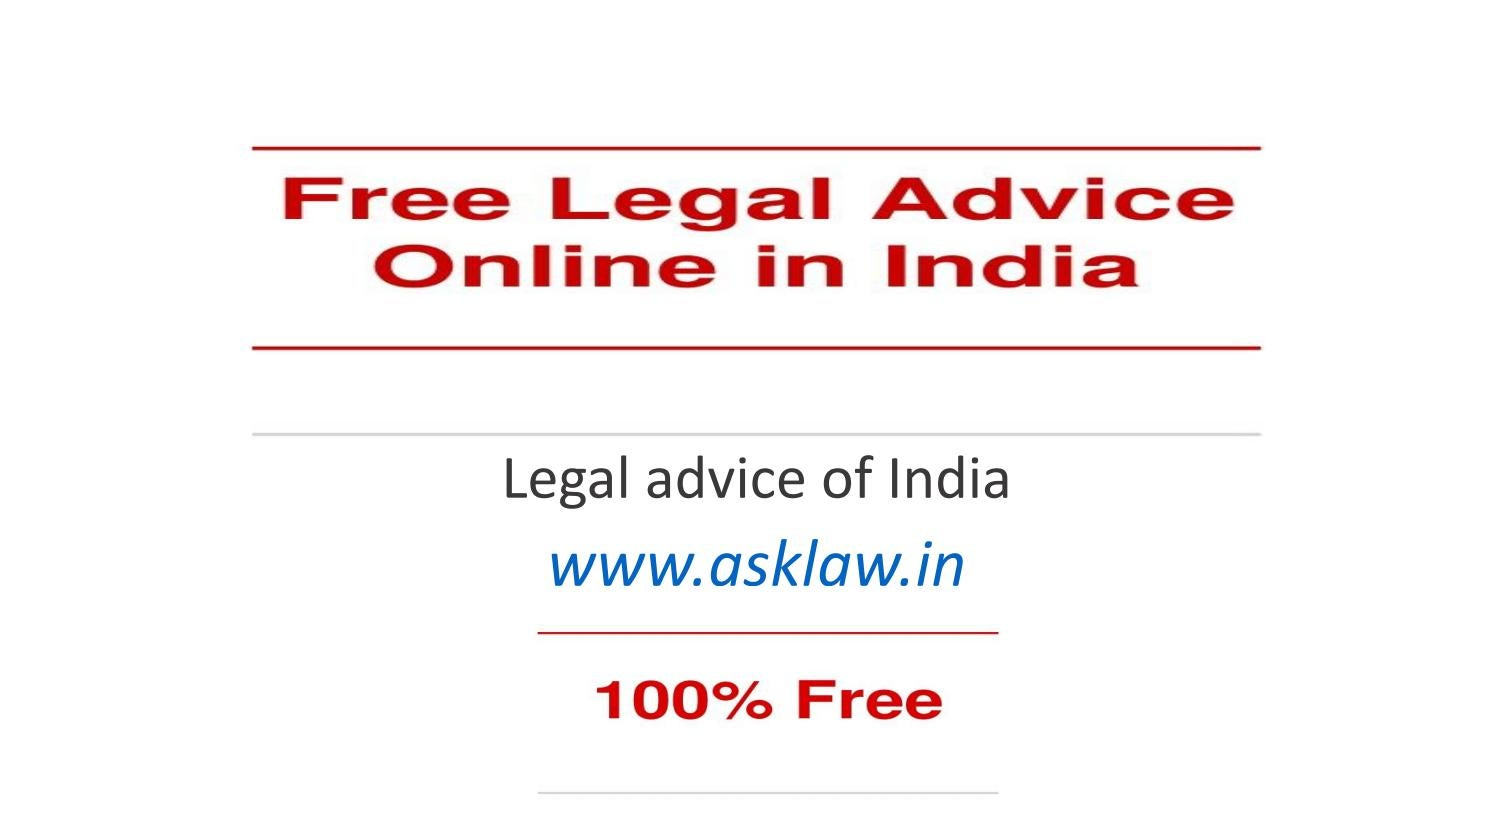 free online legal advice in india